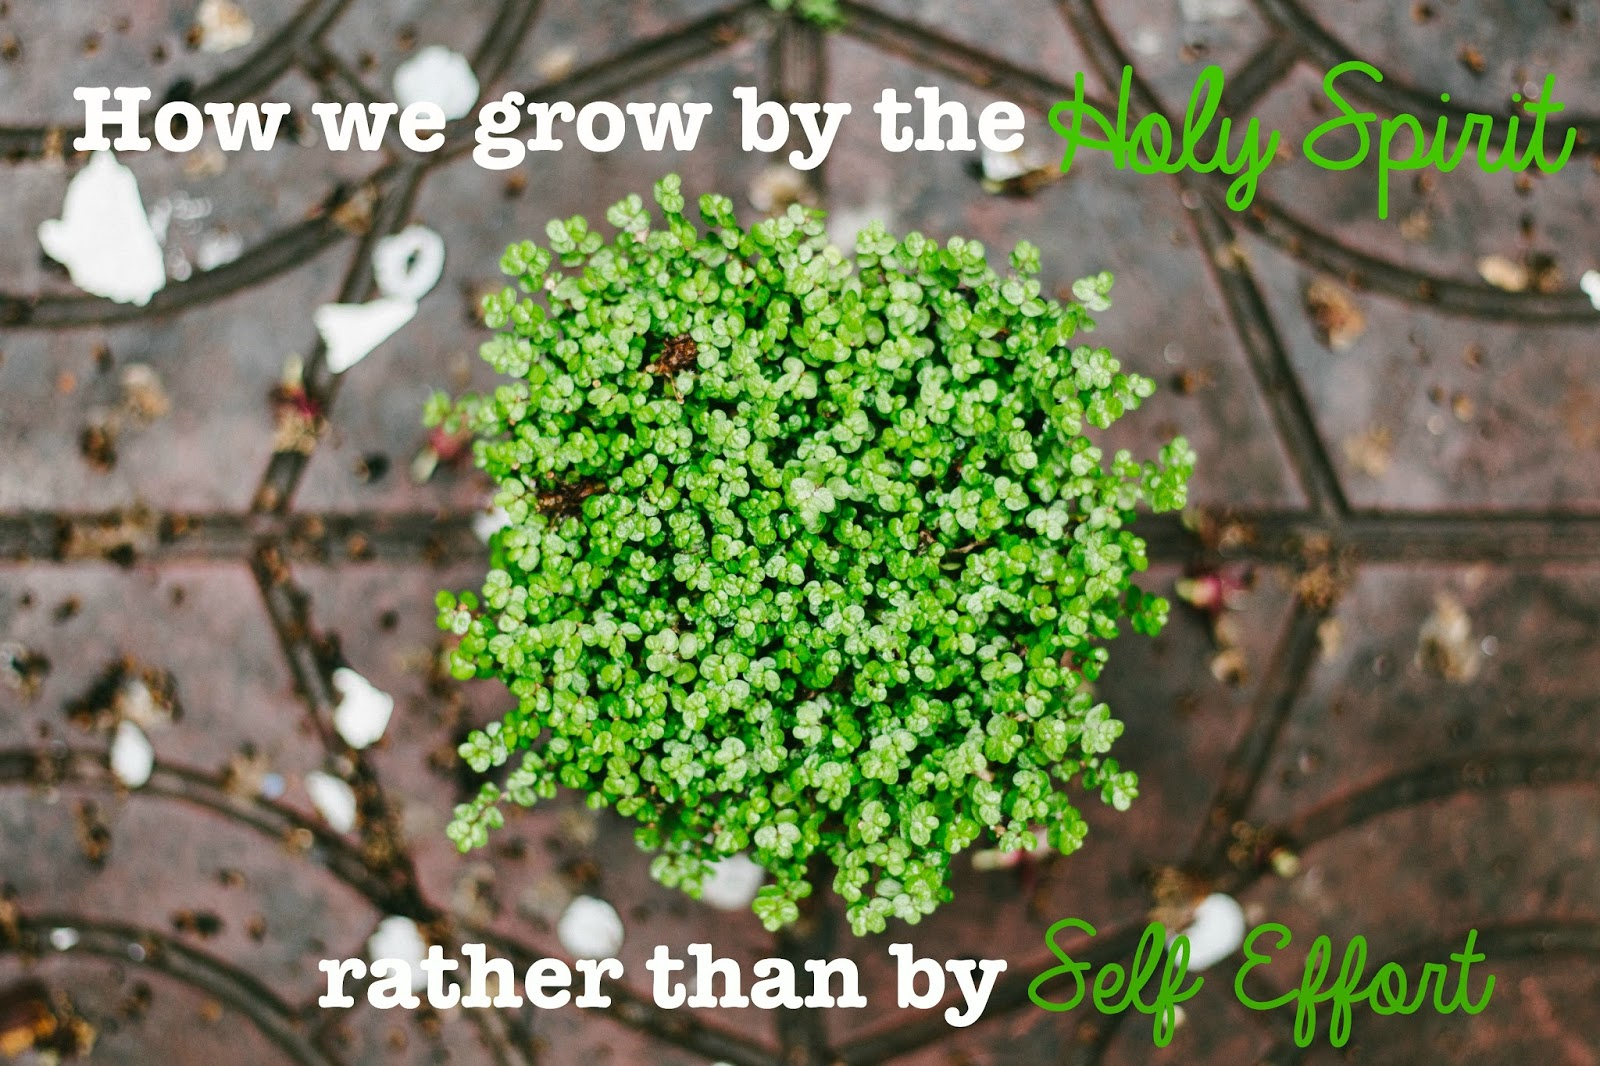 Grace Covers Me How Do We Grow By The Holy Spirit Rather